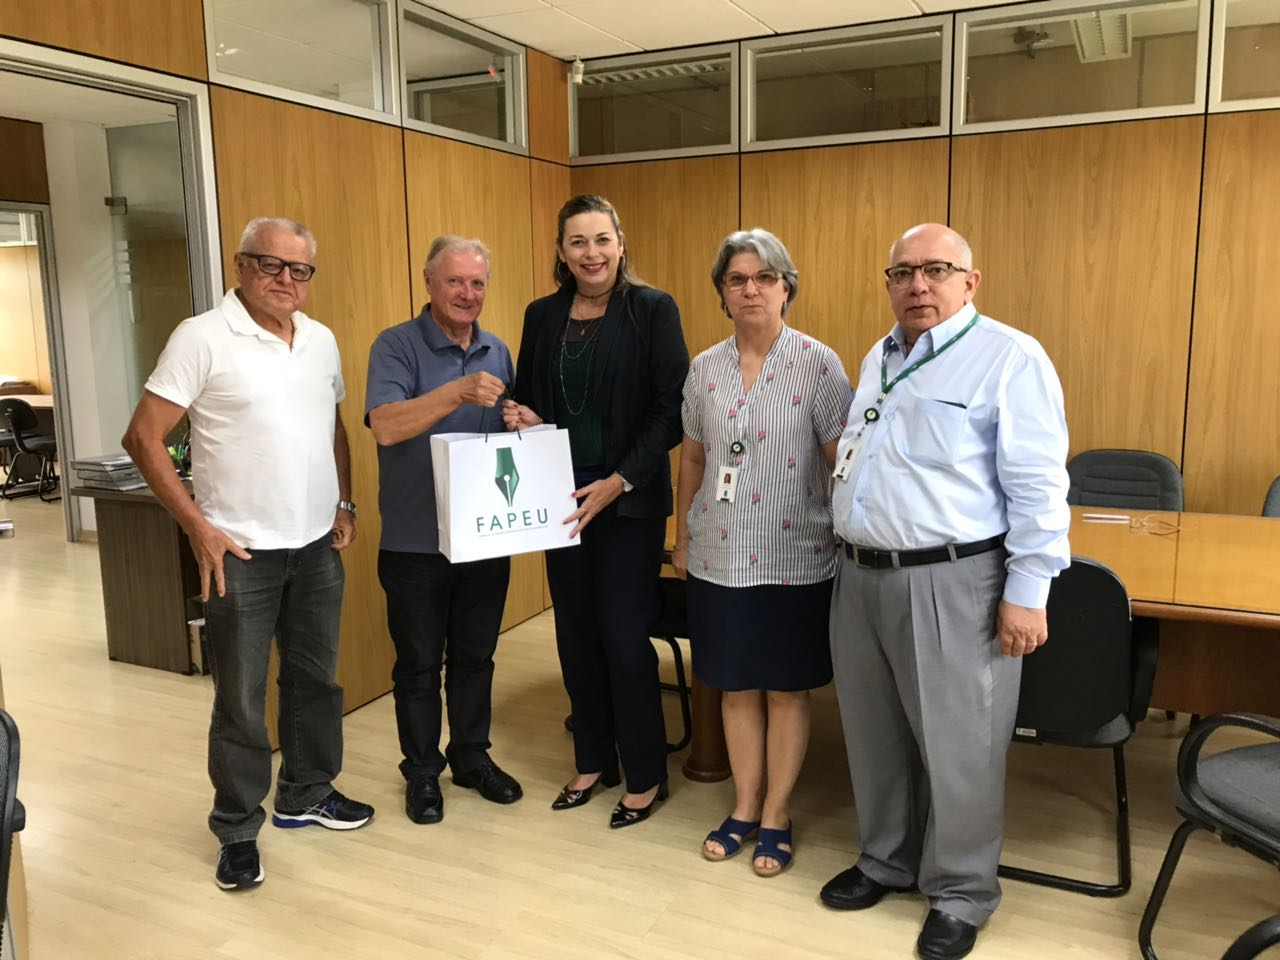 Superintendentes da FAPEU presenteando a Prof. Suzana , vice-presidente do CONFIES